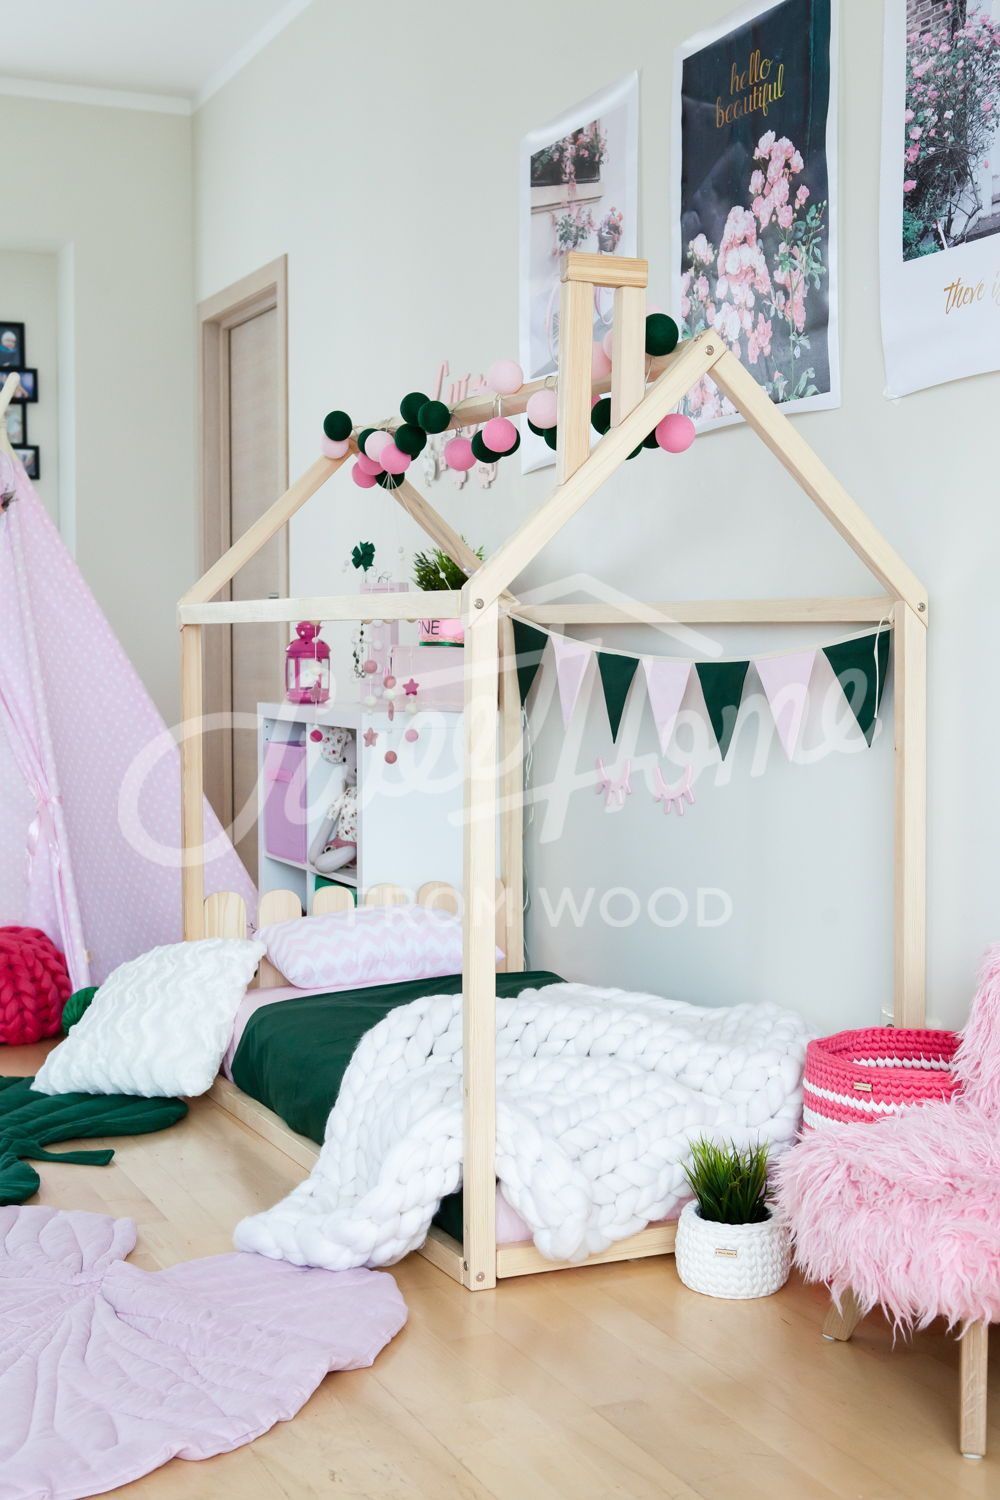 Toddler House Bed With Slats Montessori Floor Bed Kid Bed Wood